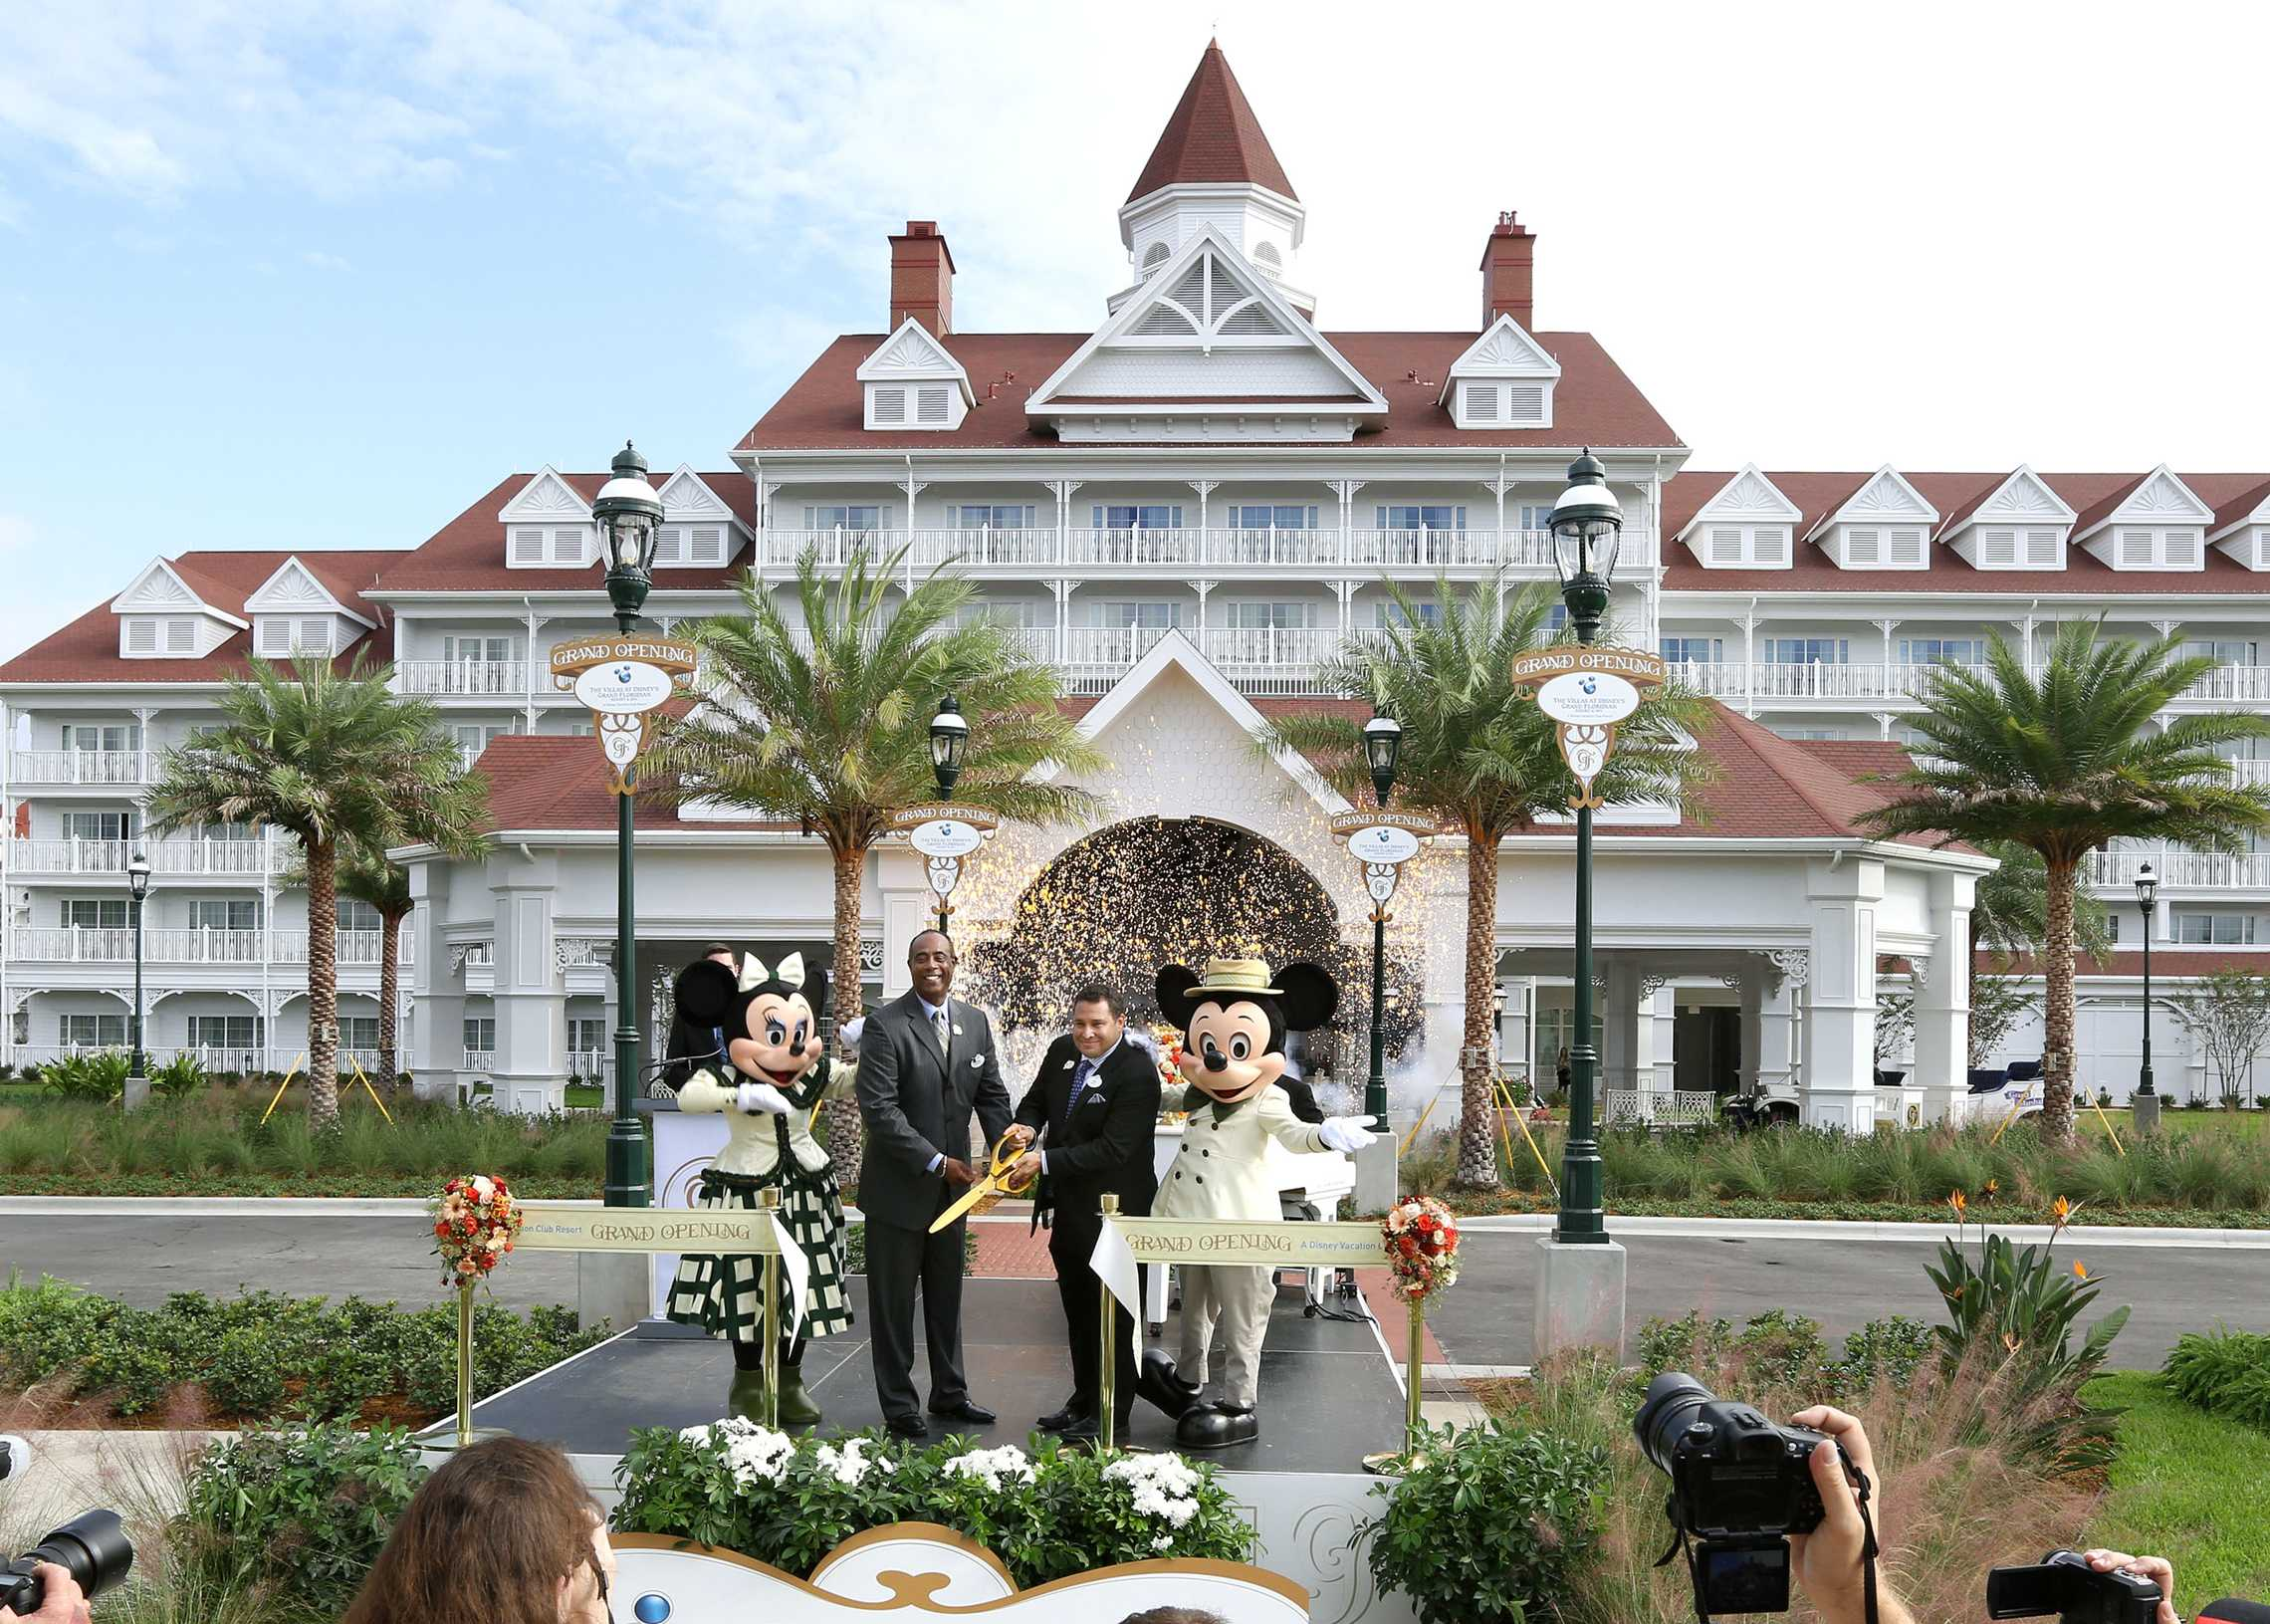 Ken Potrock, Norm Noble at the new Villas at Disney's Grand Floridian Resort joined Mickey and Minnie Mouse to celebrate the grand opening